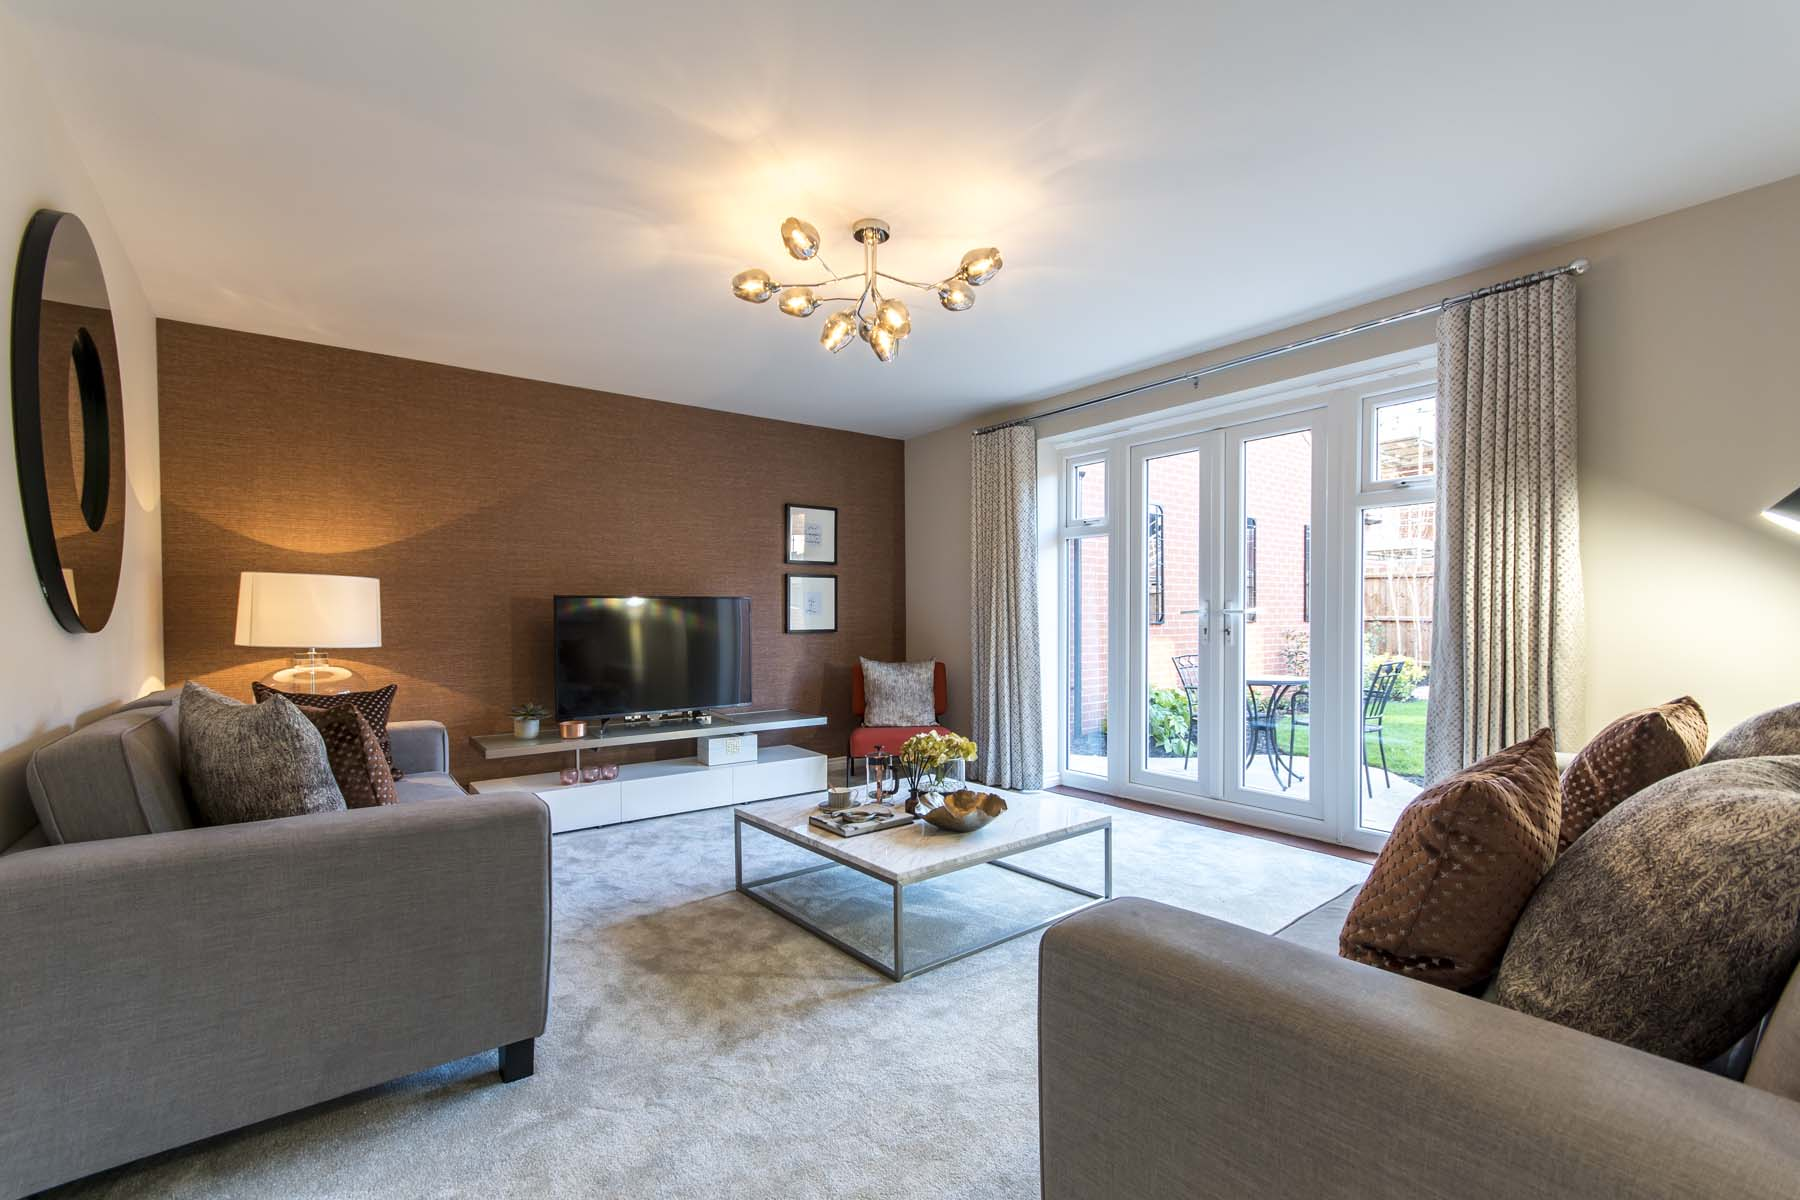 TW Exeter - Mayfield Gardens - Marford example living room